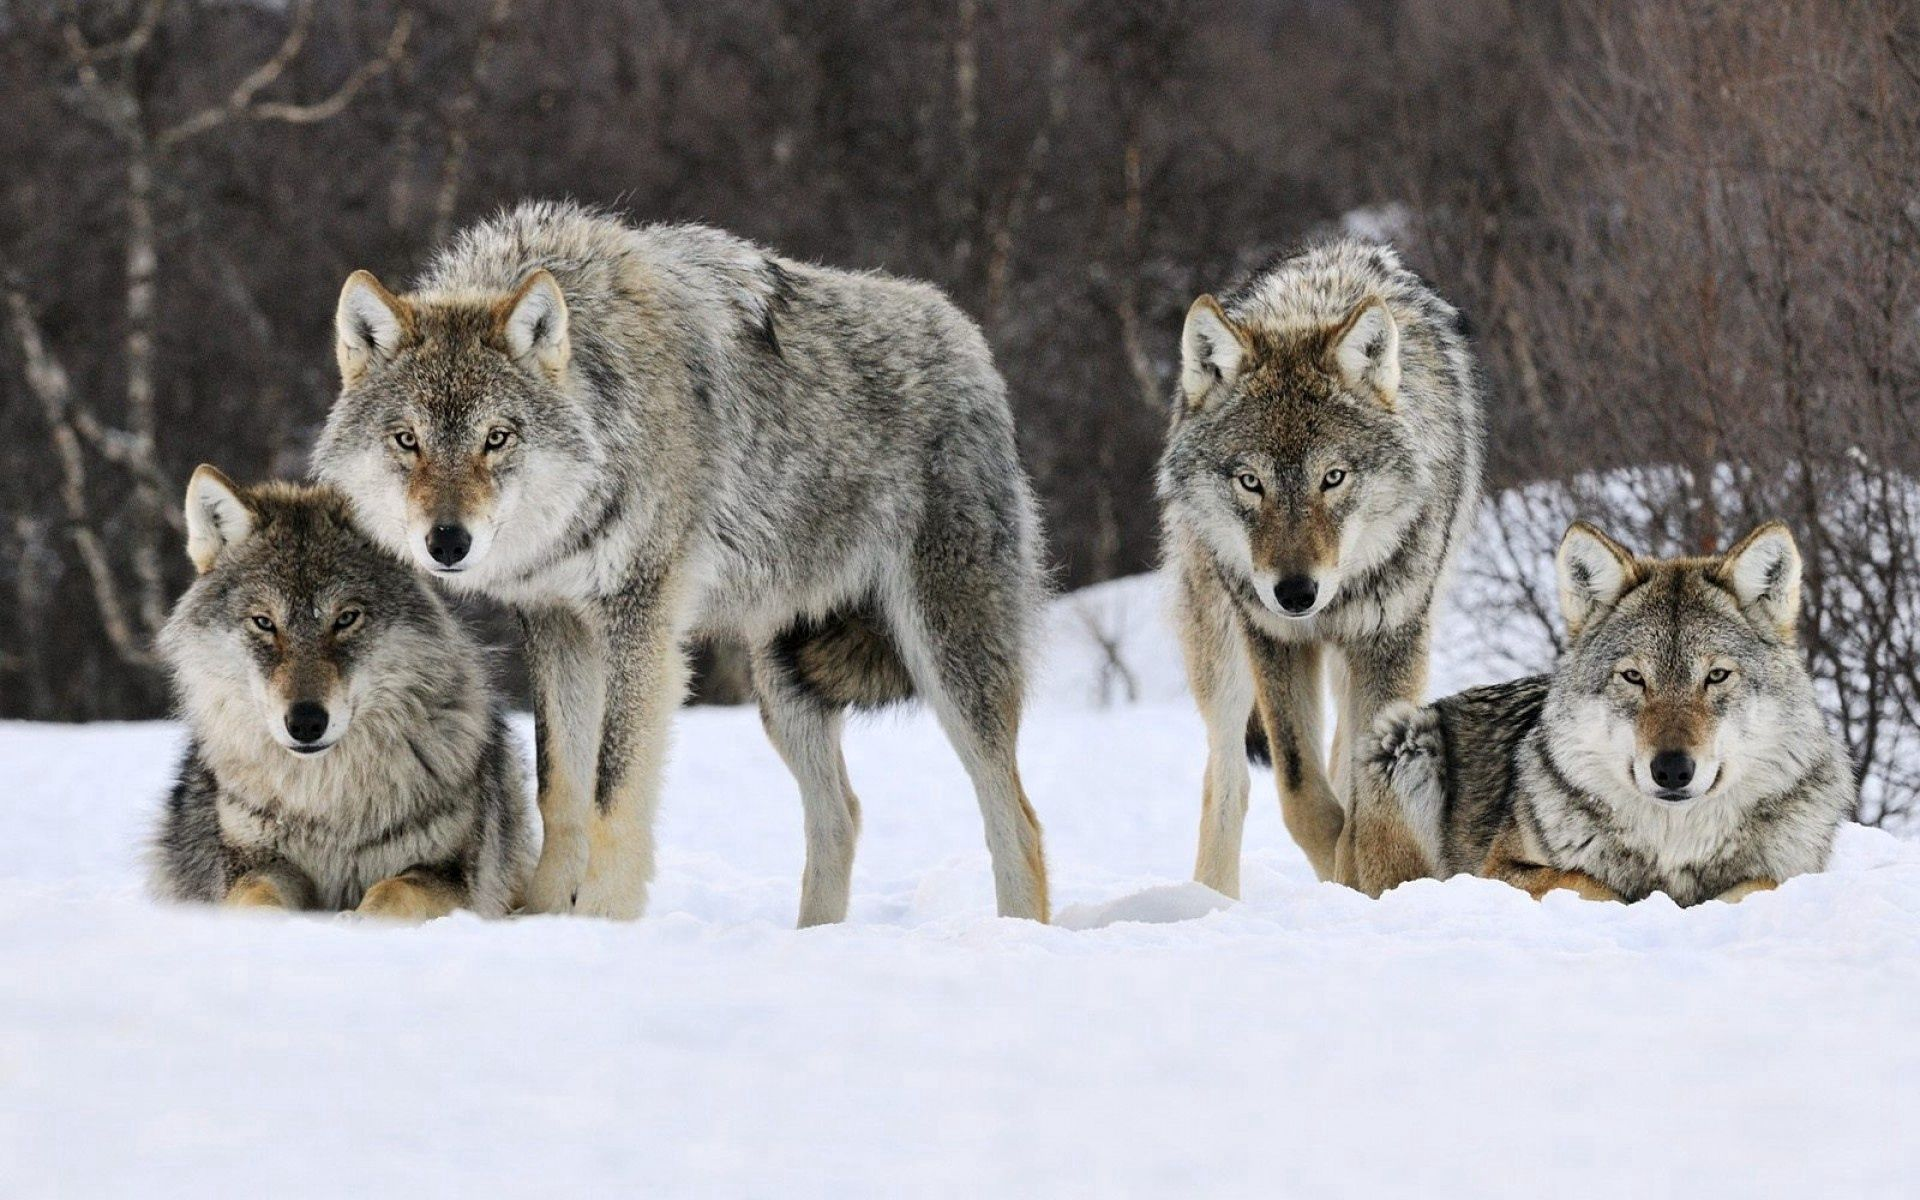 64601 download wallpaper Animals, Wolfs, Snow, Flock, Predator screensavers and pictures for free